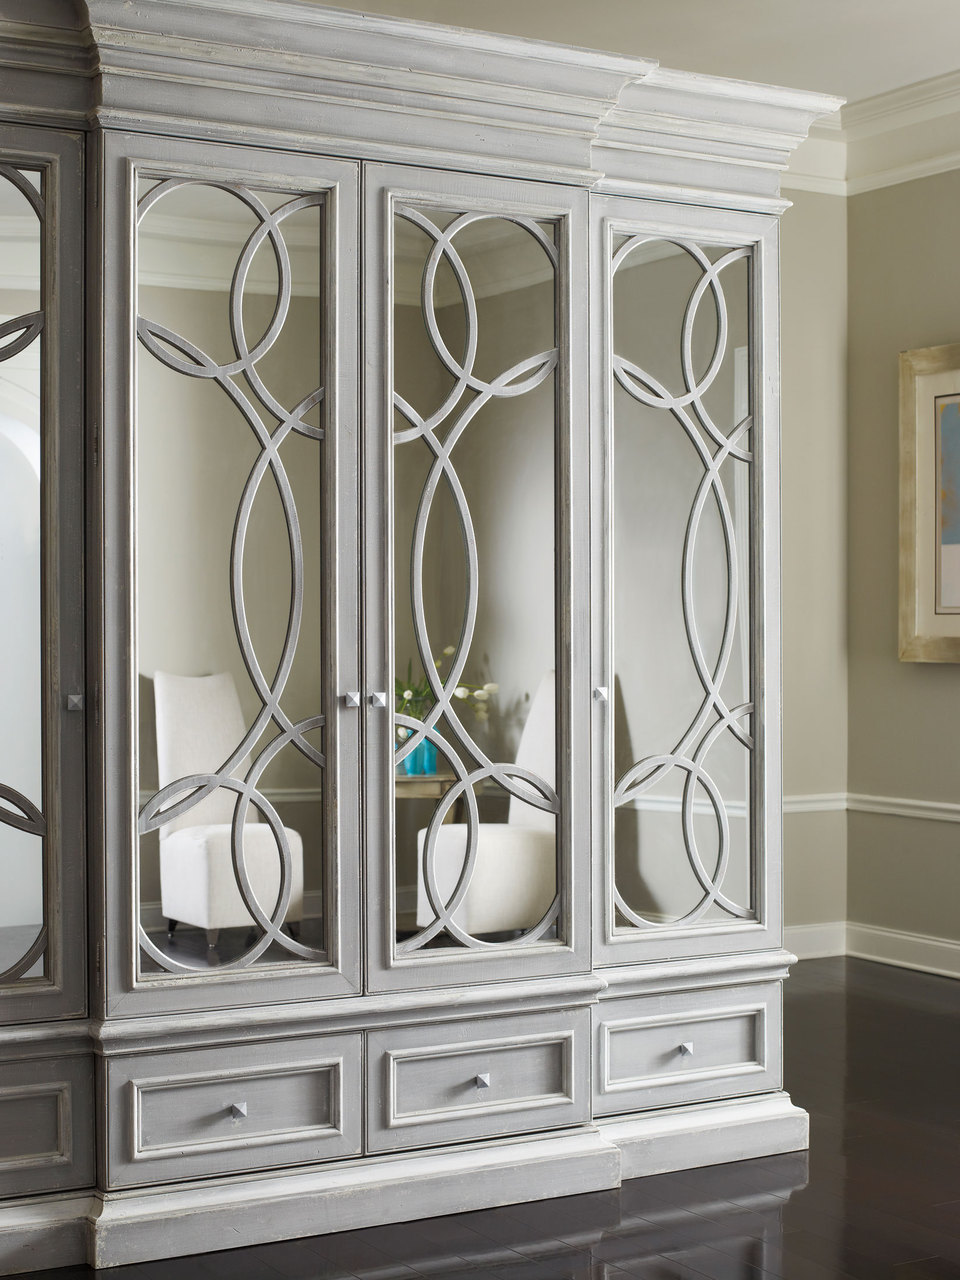 This East Hampton Media Cabinet with mirrored doors by   Habersham     would be an elegant way to hide the TV in a more formal living space.